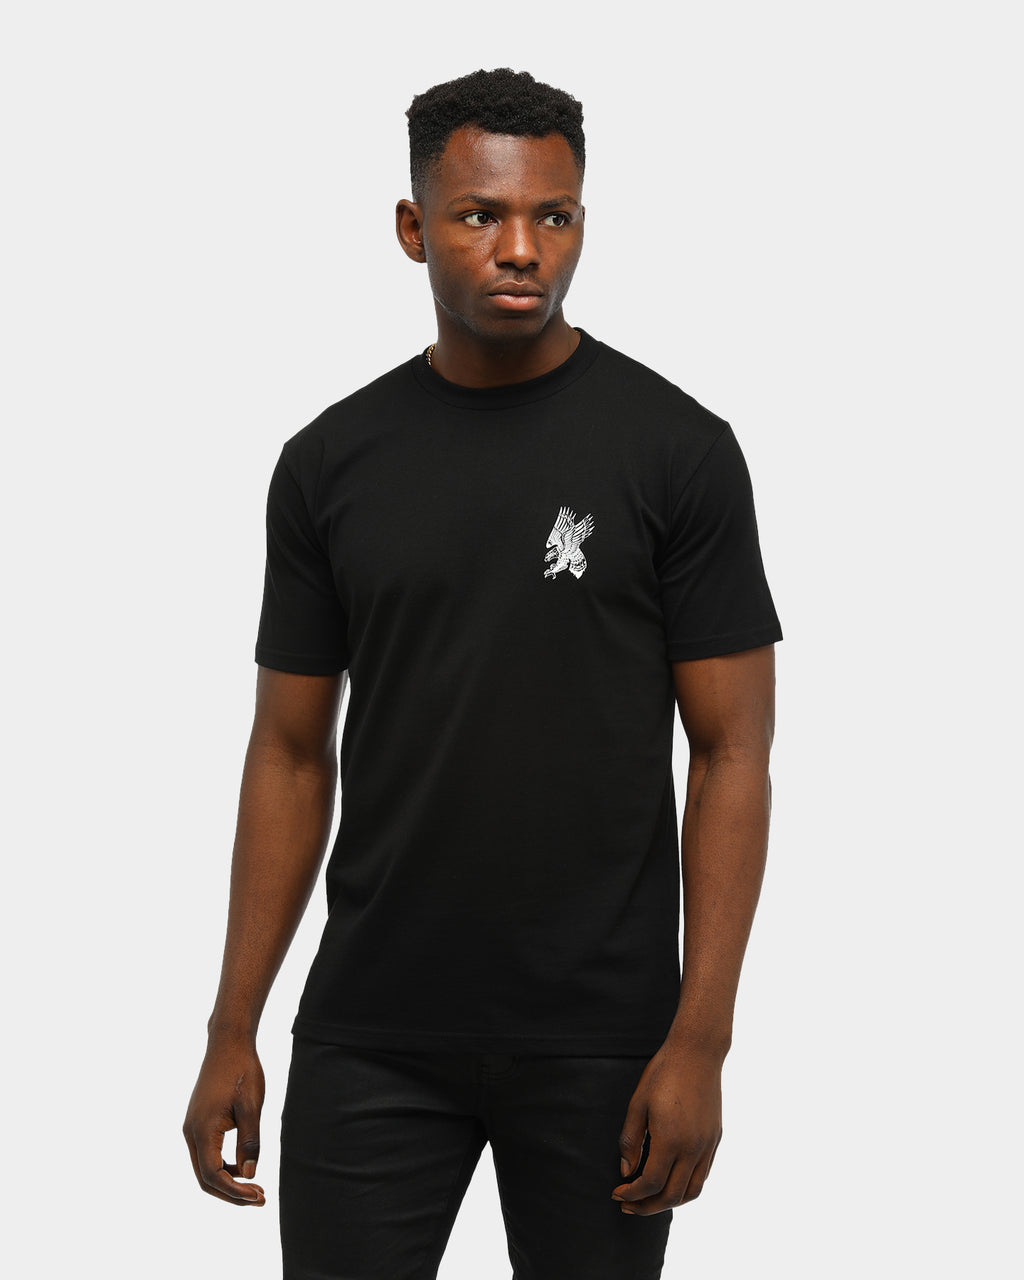 RGF X MS SOAR TEE - Black